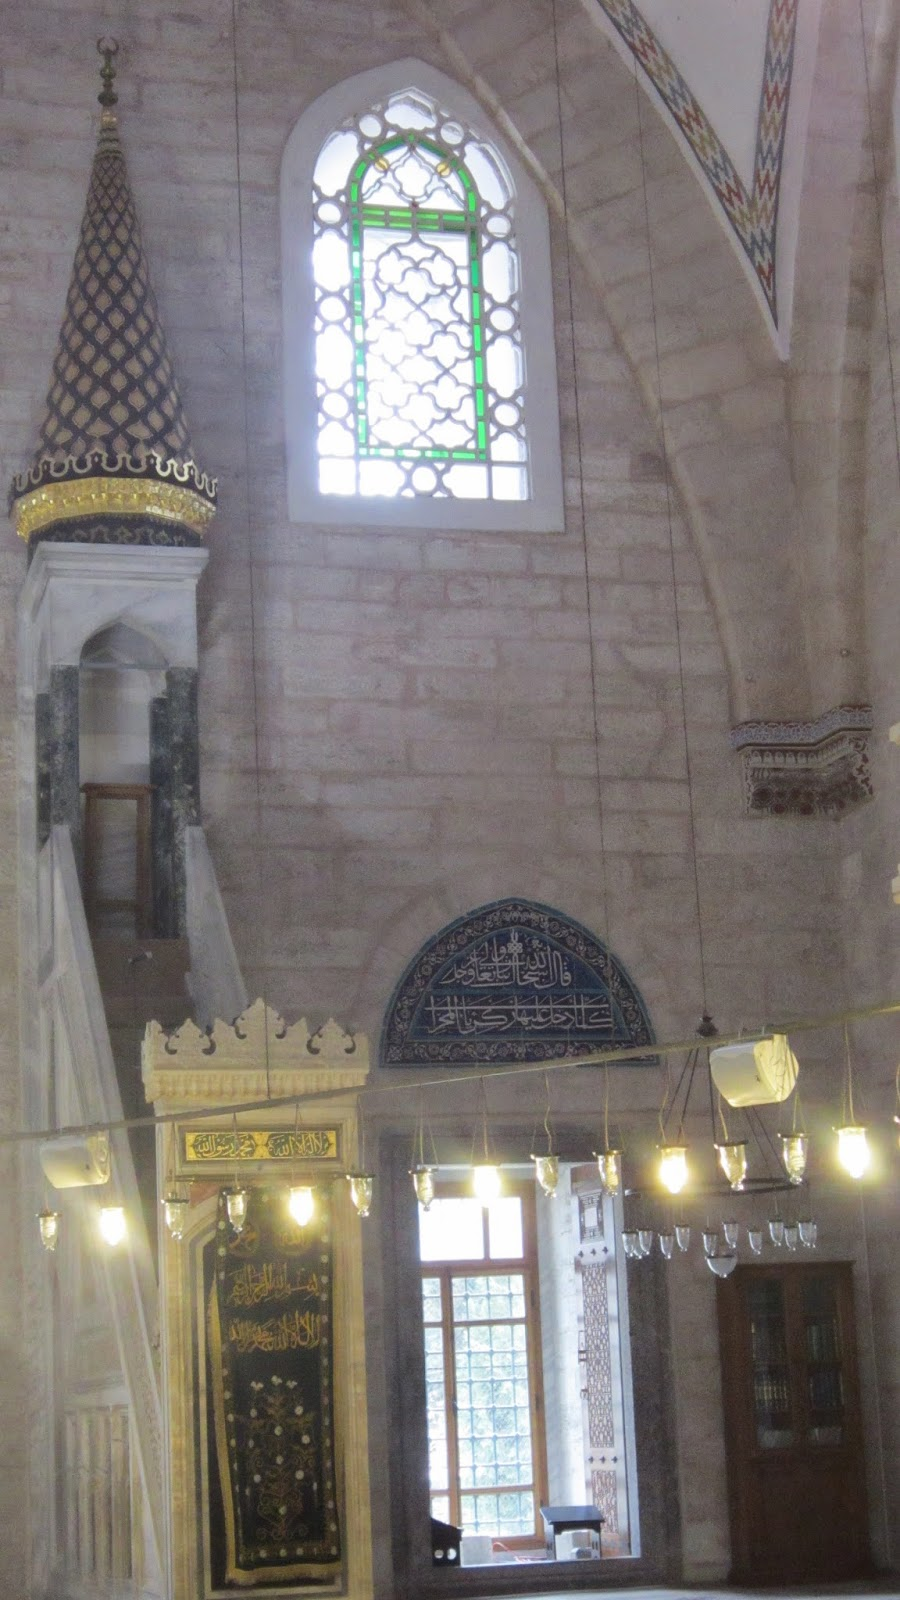 Tracing istanbul completed in 1529 the architect of the mosque is acem ali a special shroud from mecca hangs on the wall facing qibla built as a an ottoman social complex thecheapjerseys Images